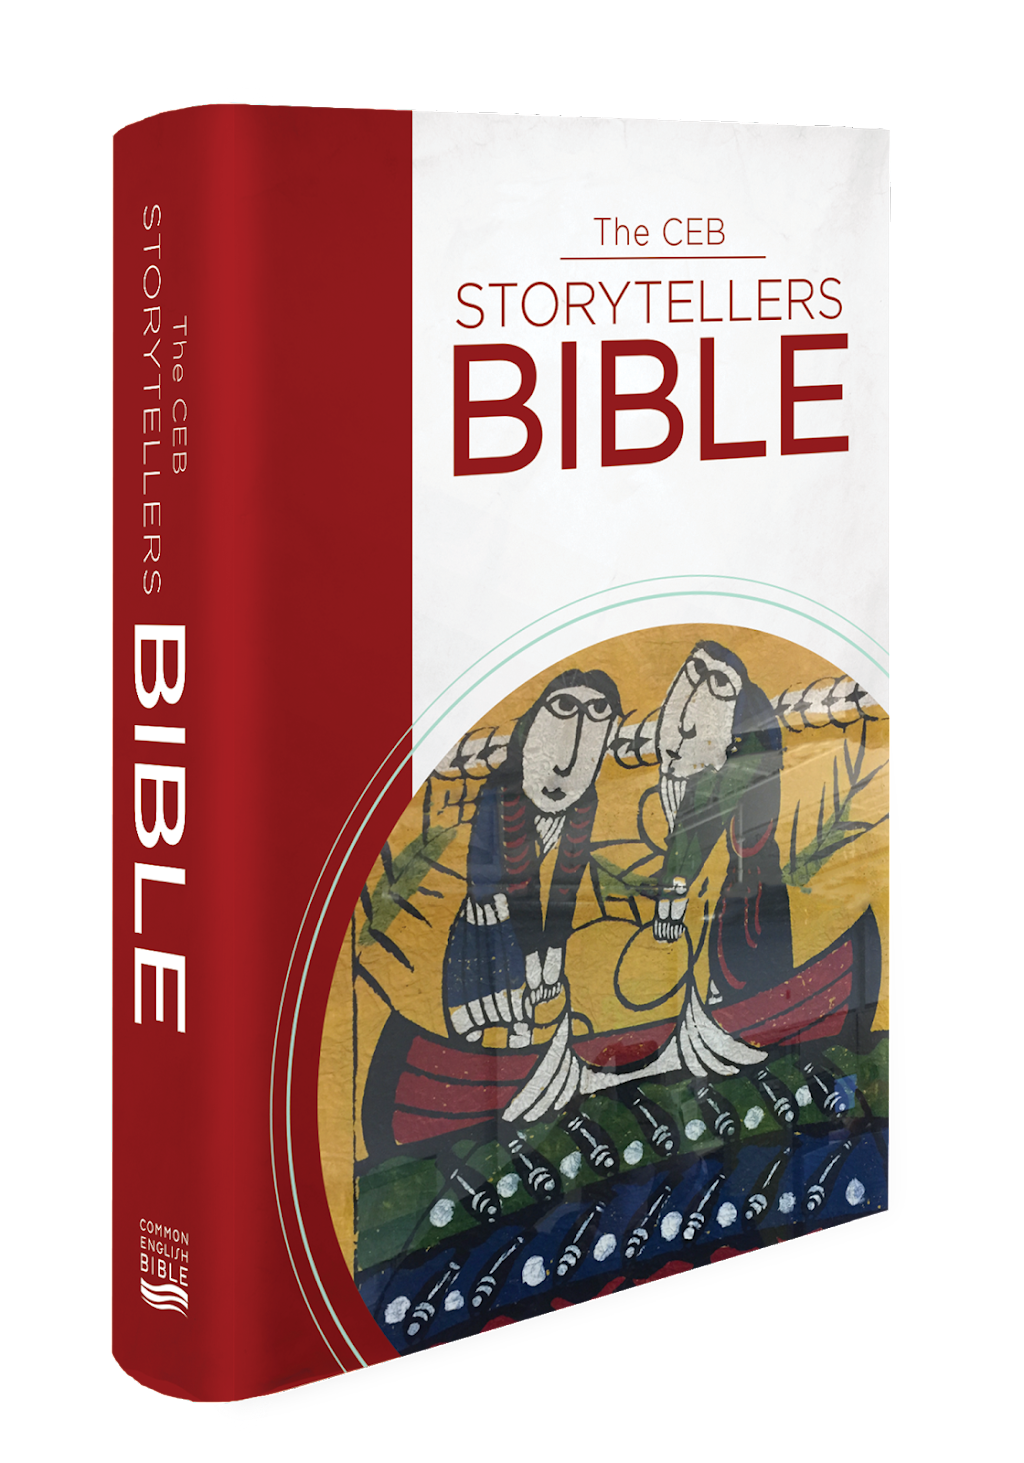 CEB Storytellers Bible